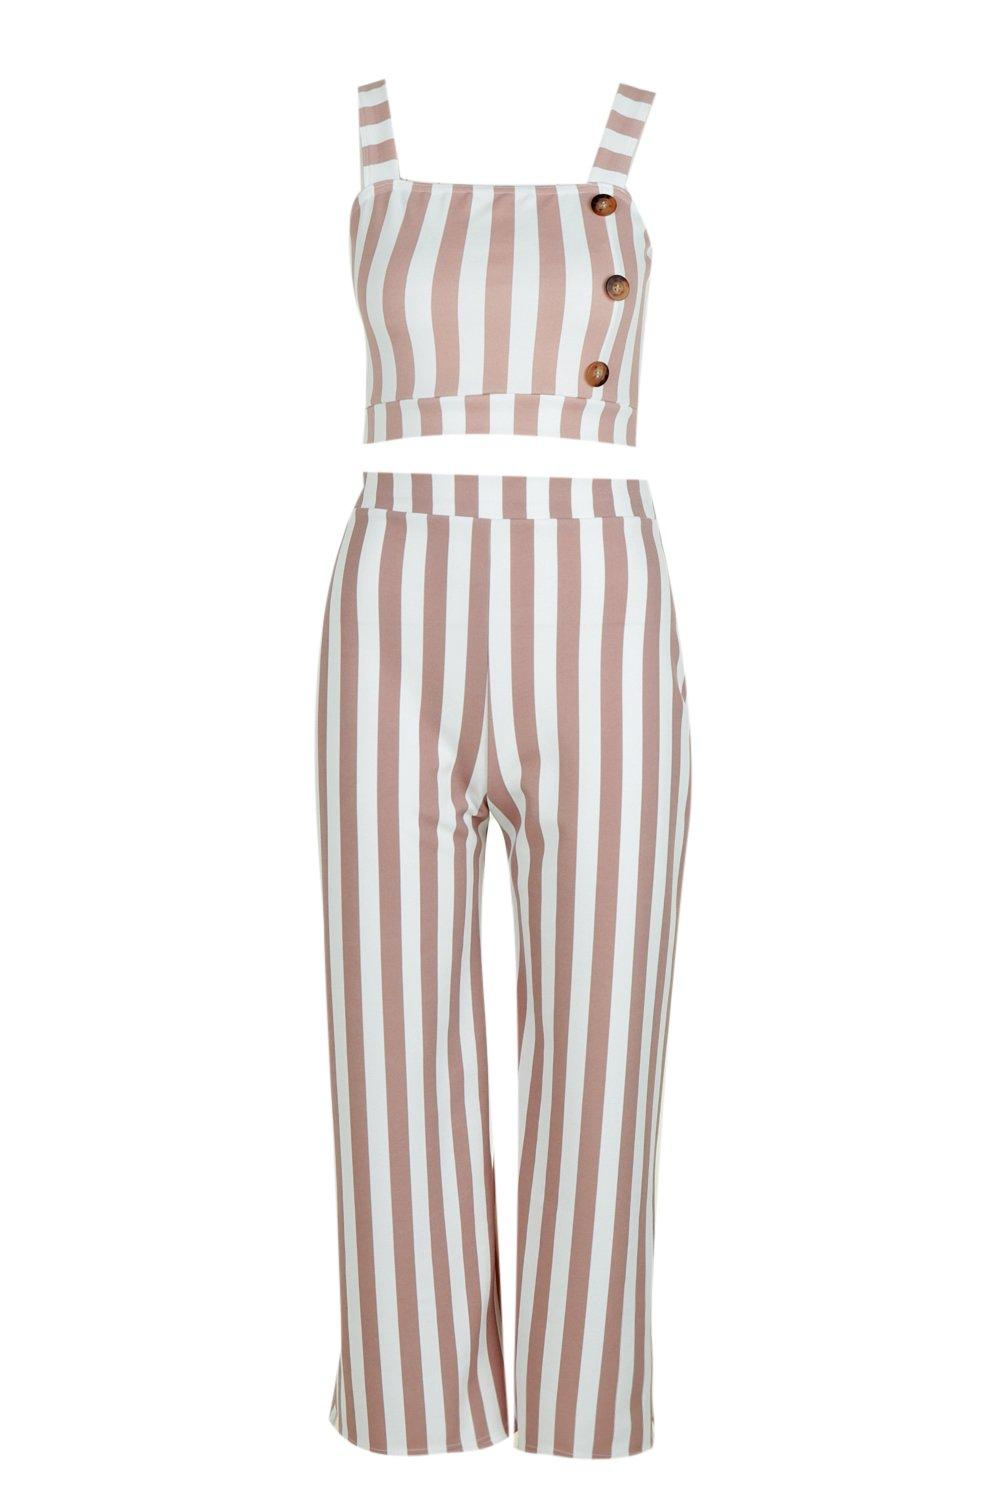 Square Bralet Stripe Co Neck pink Trouser ord zqx4ad